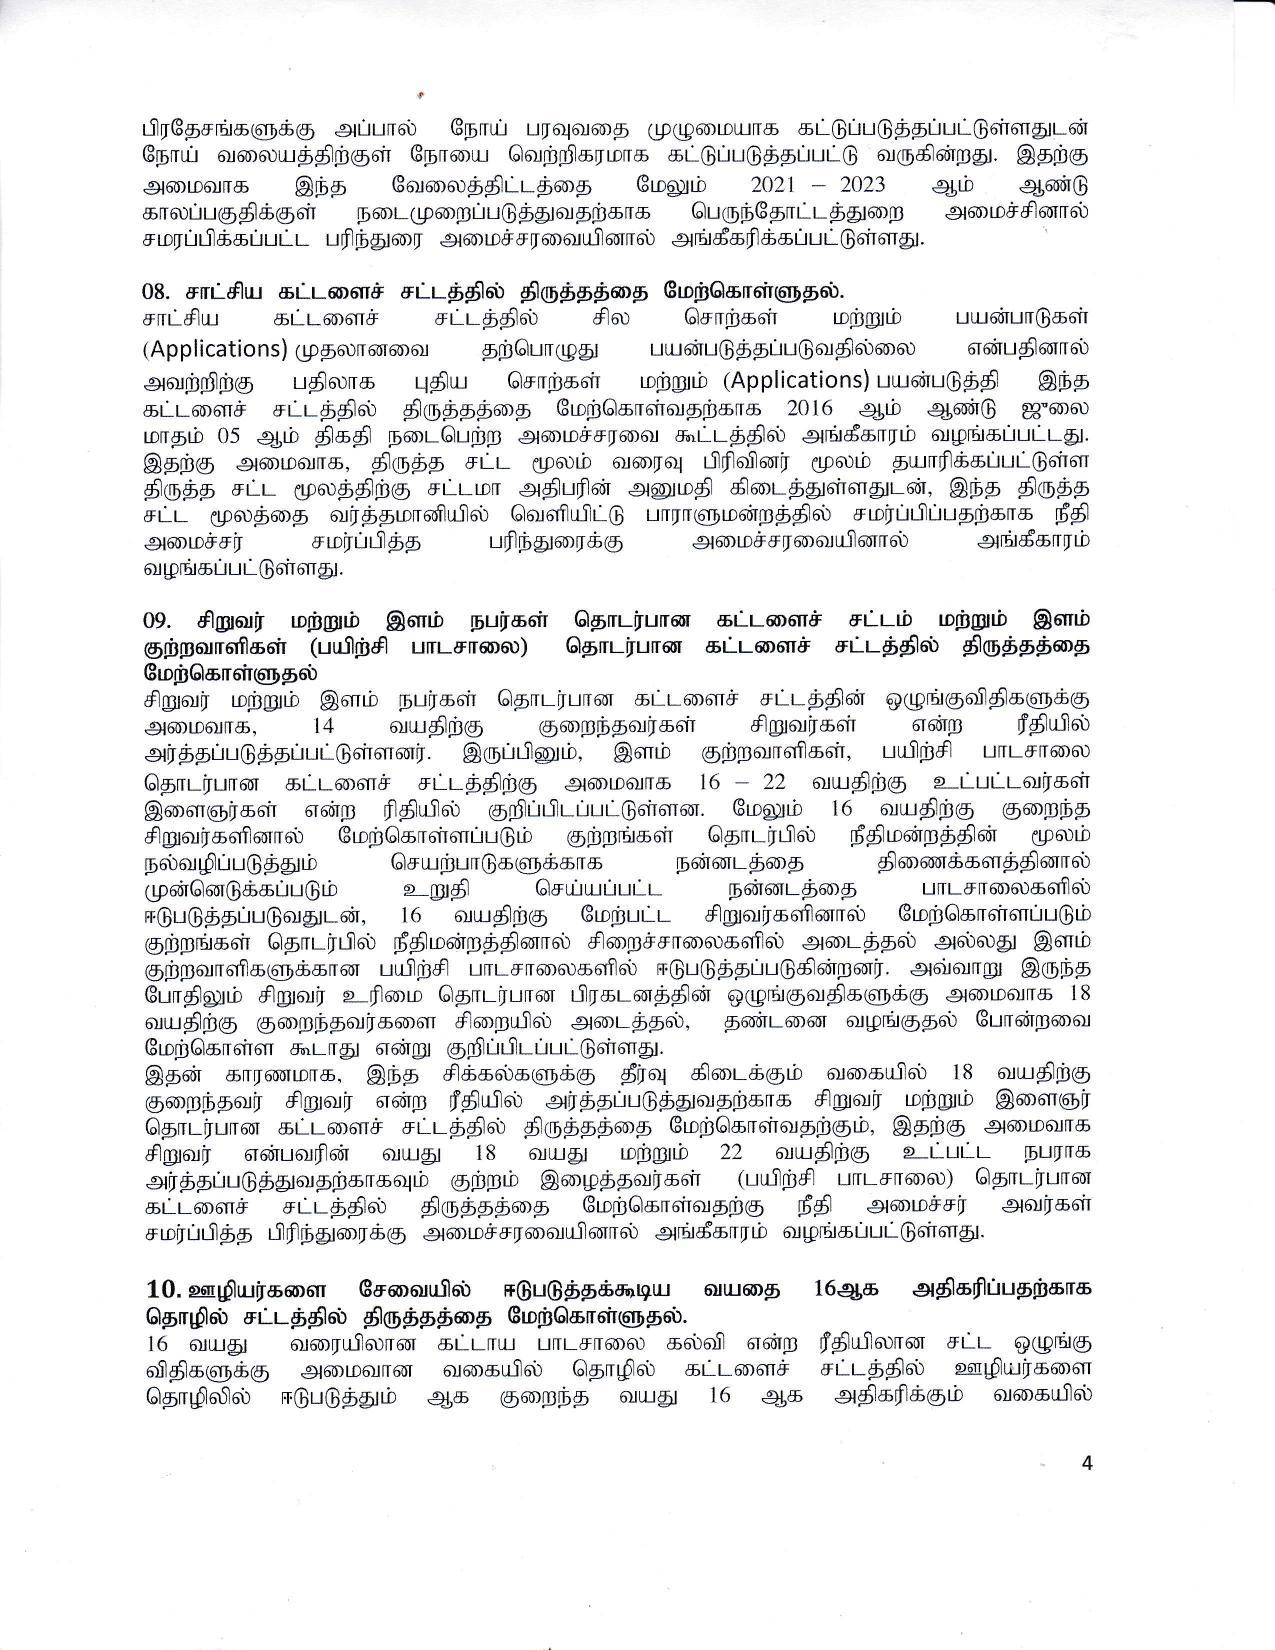 Cabinet Decision on 16.09.2020 0 Tamil 1 page 004